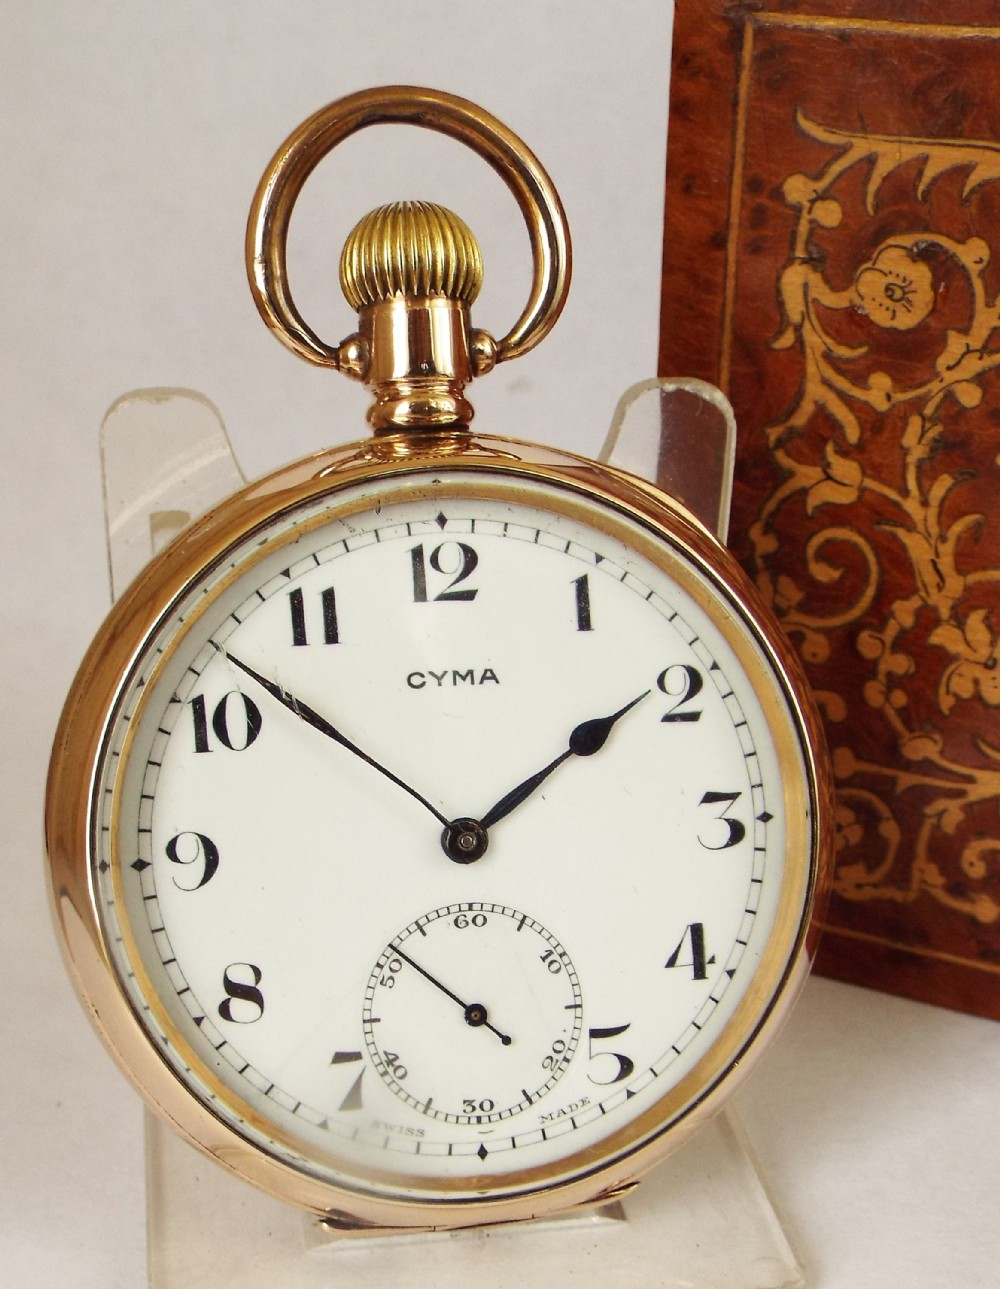 a vintage 1930s cyma pocket watch